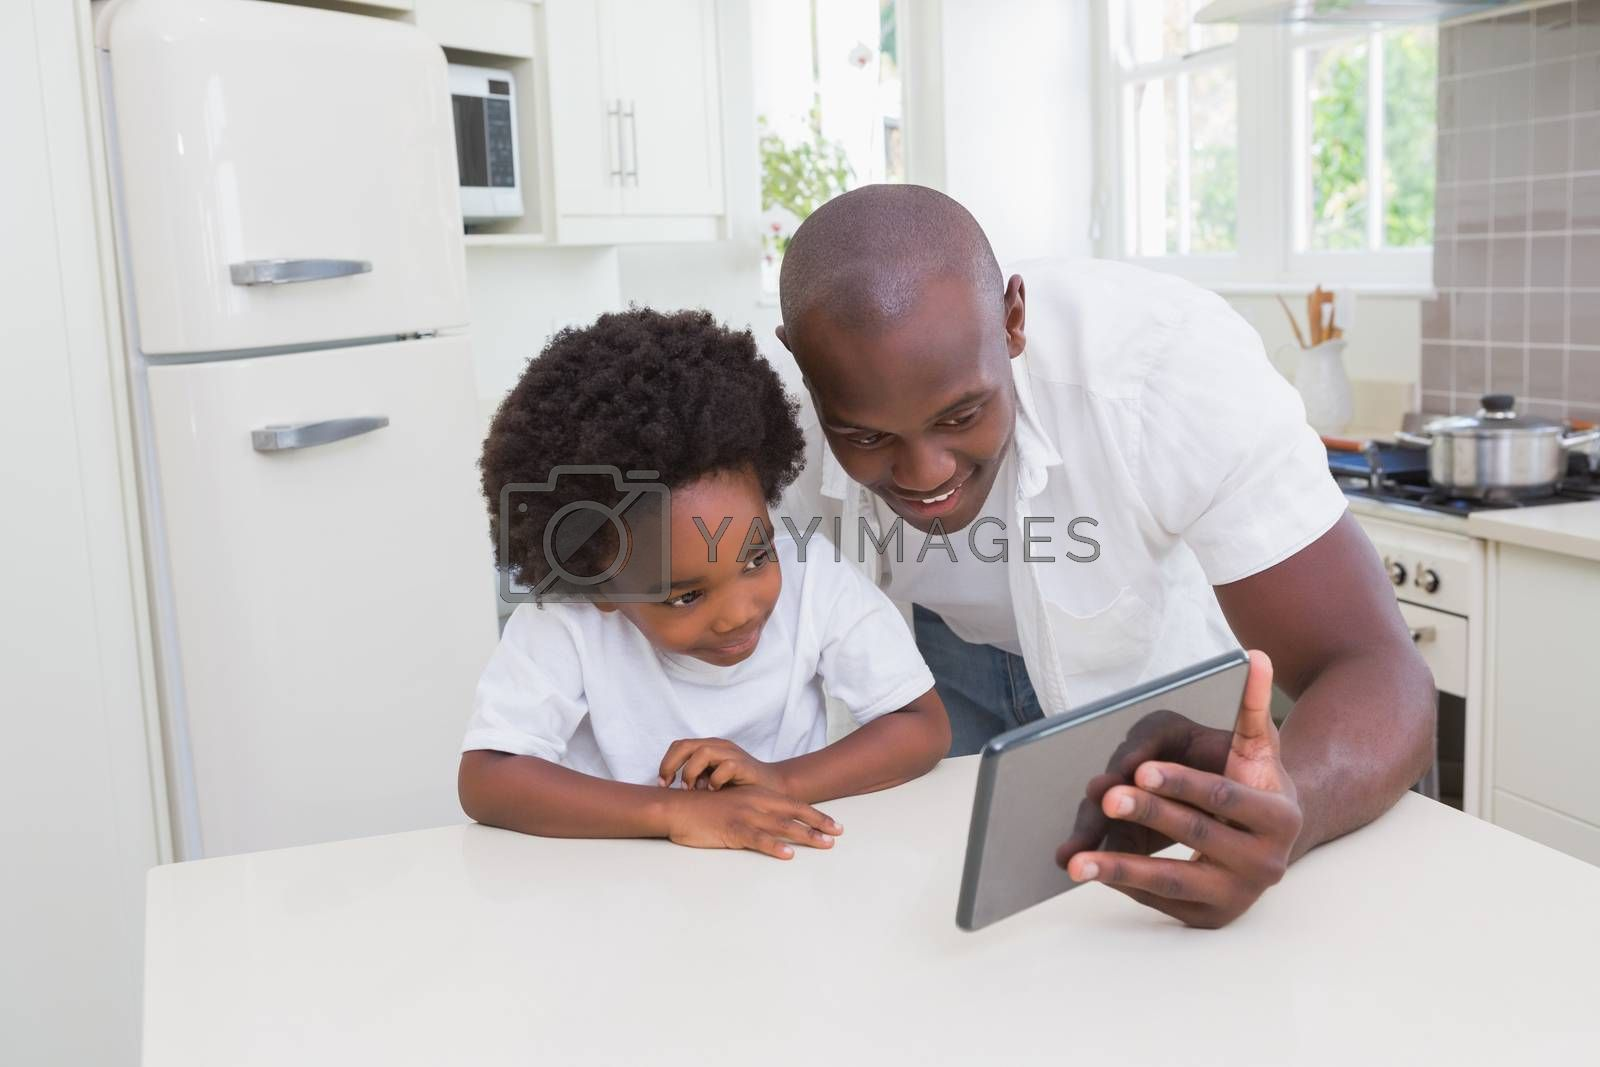 Royalty free image of Father and son using digital tablet by Wavebreakmedia